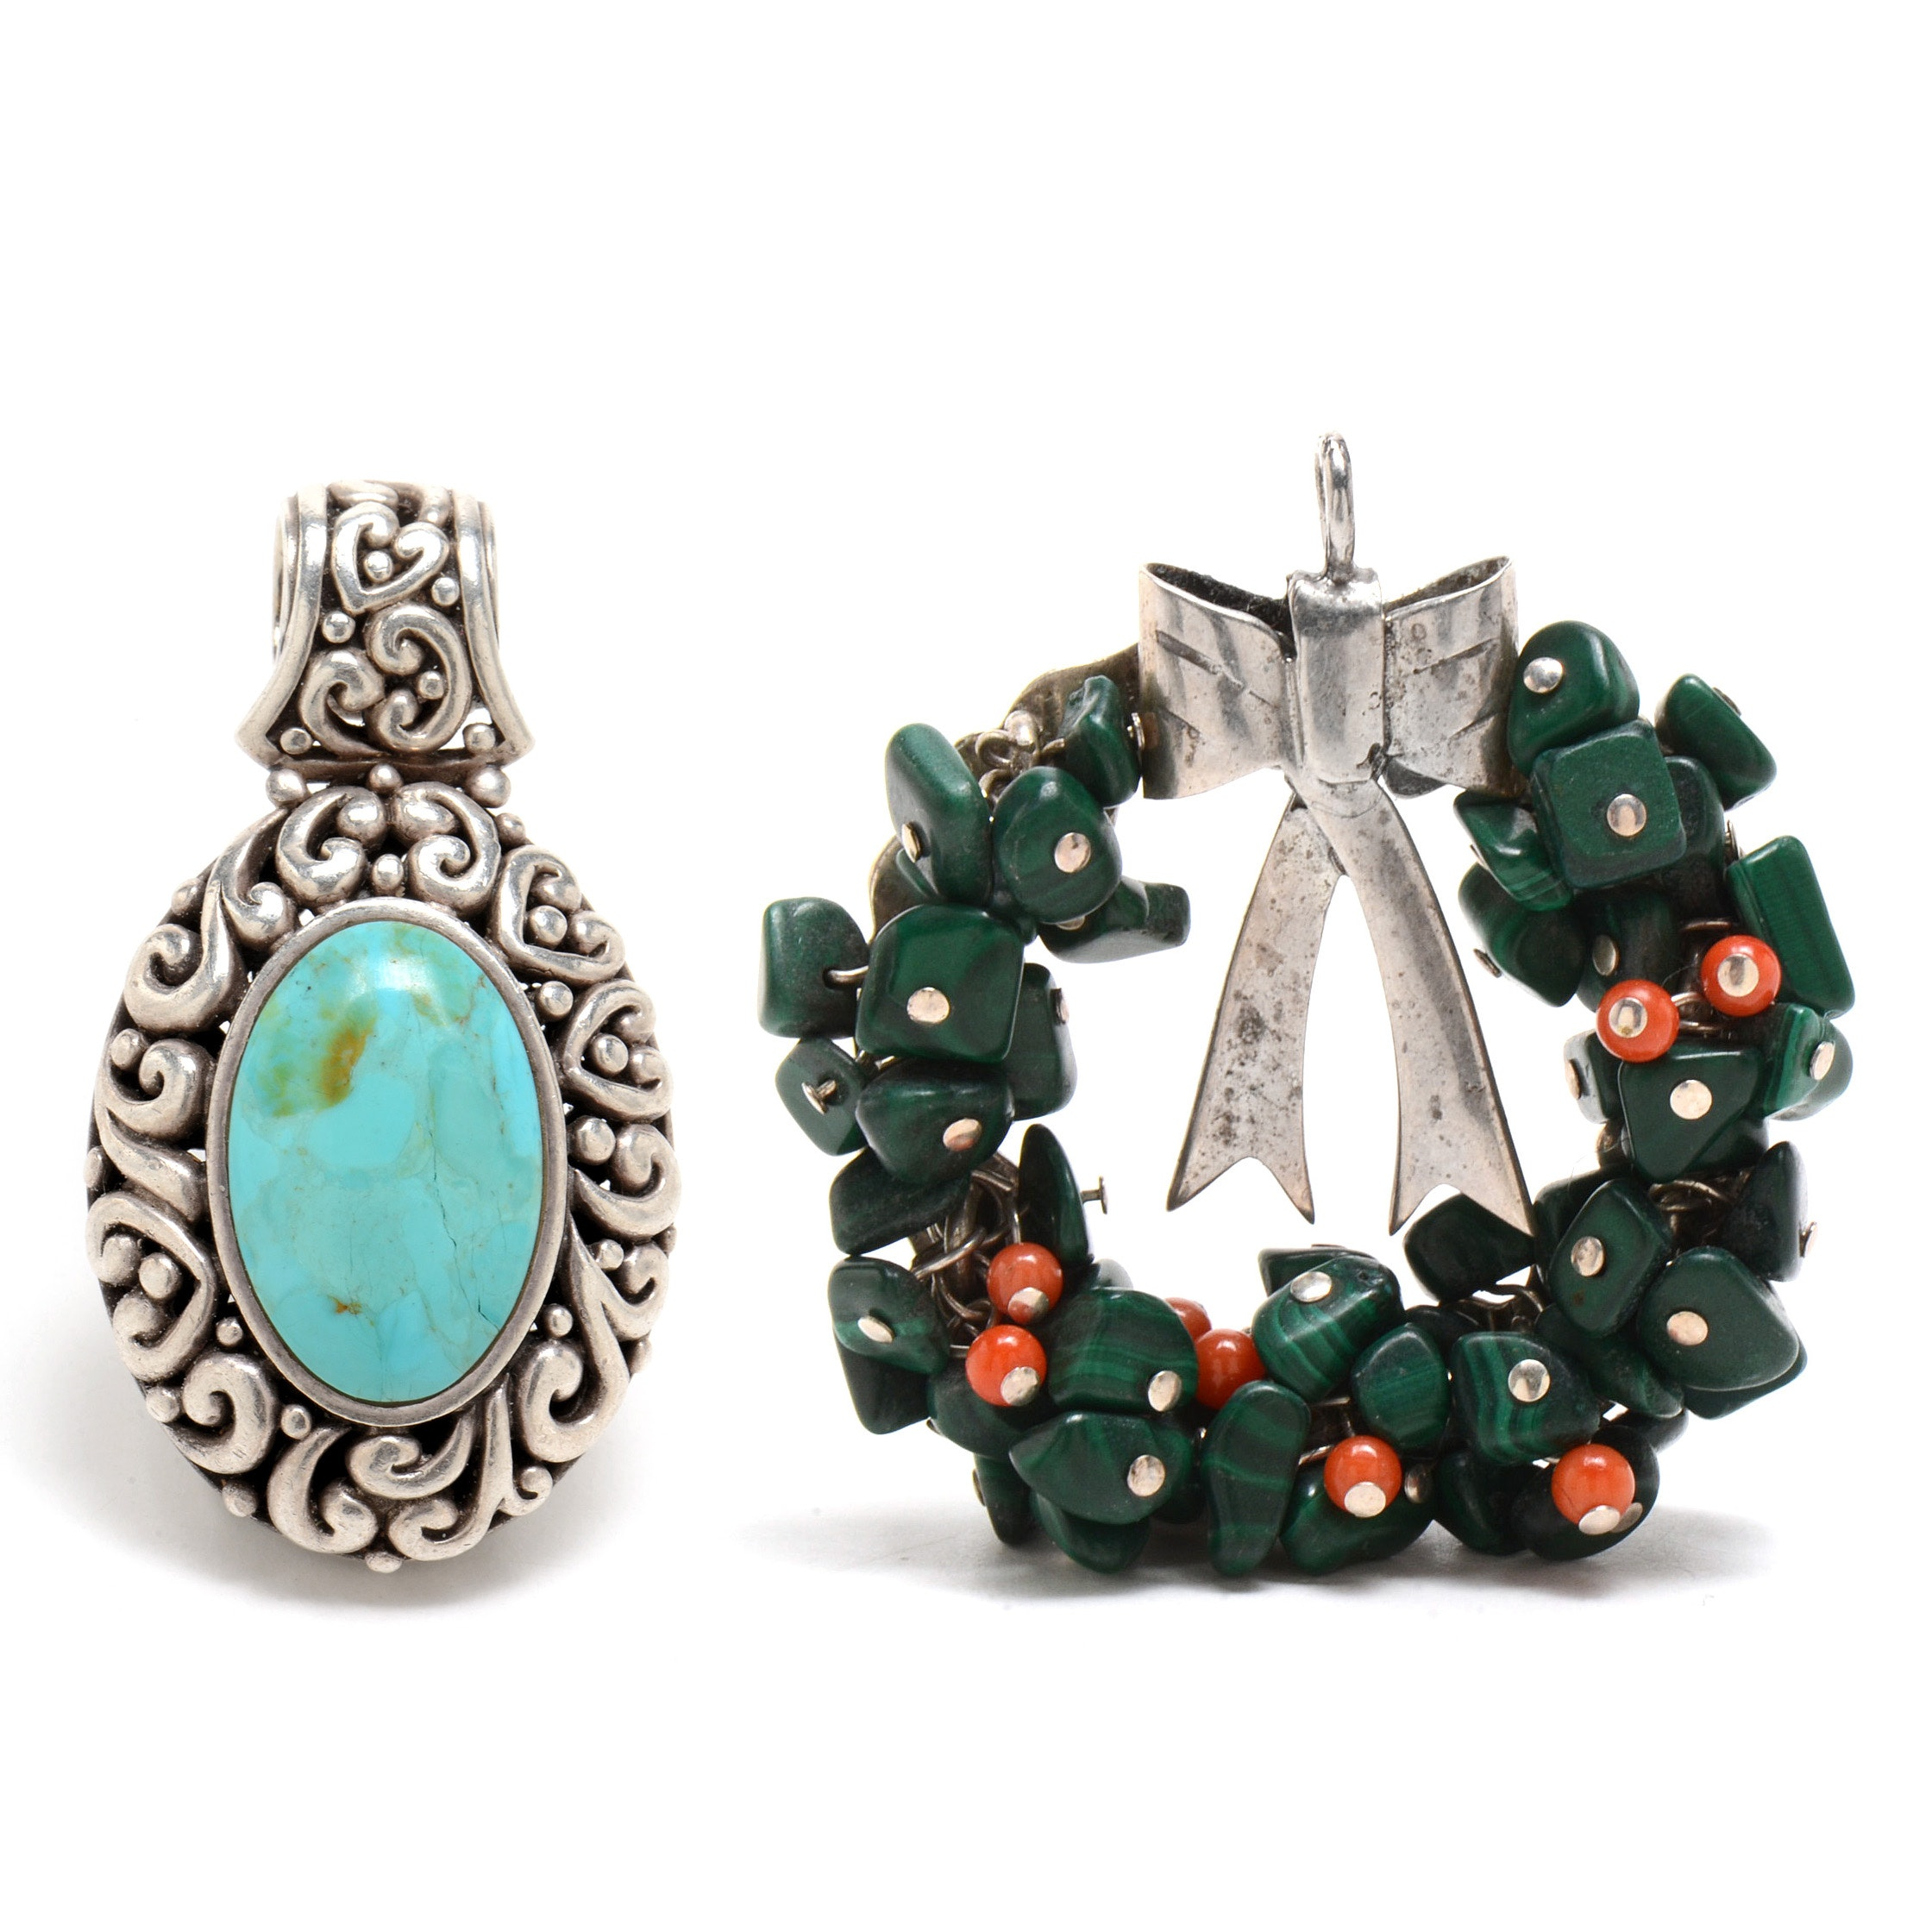 Sterling Silver Turquoise Pendant and Malachite Coral Pendant